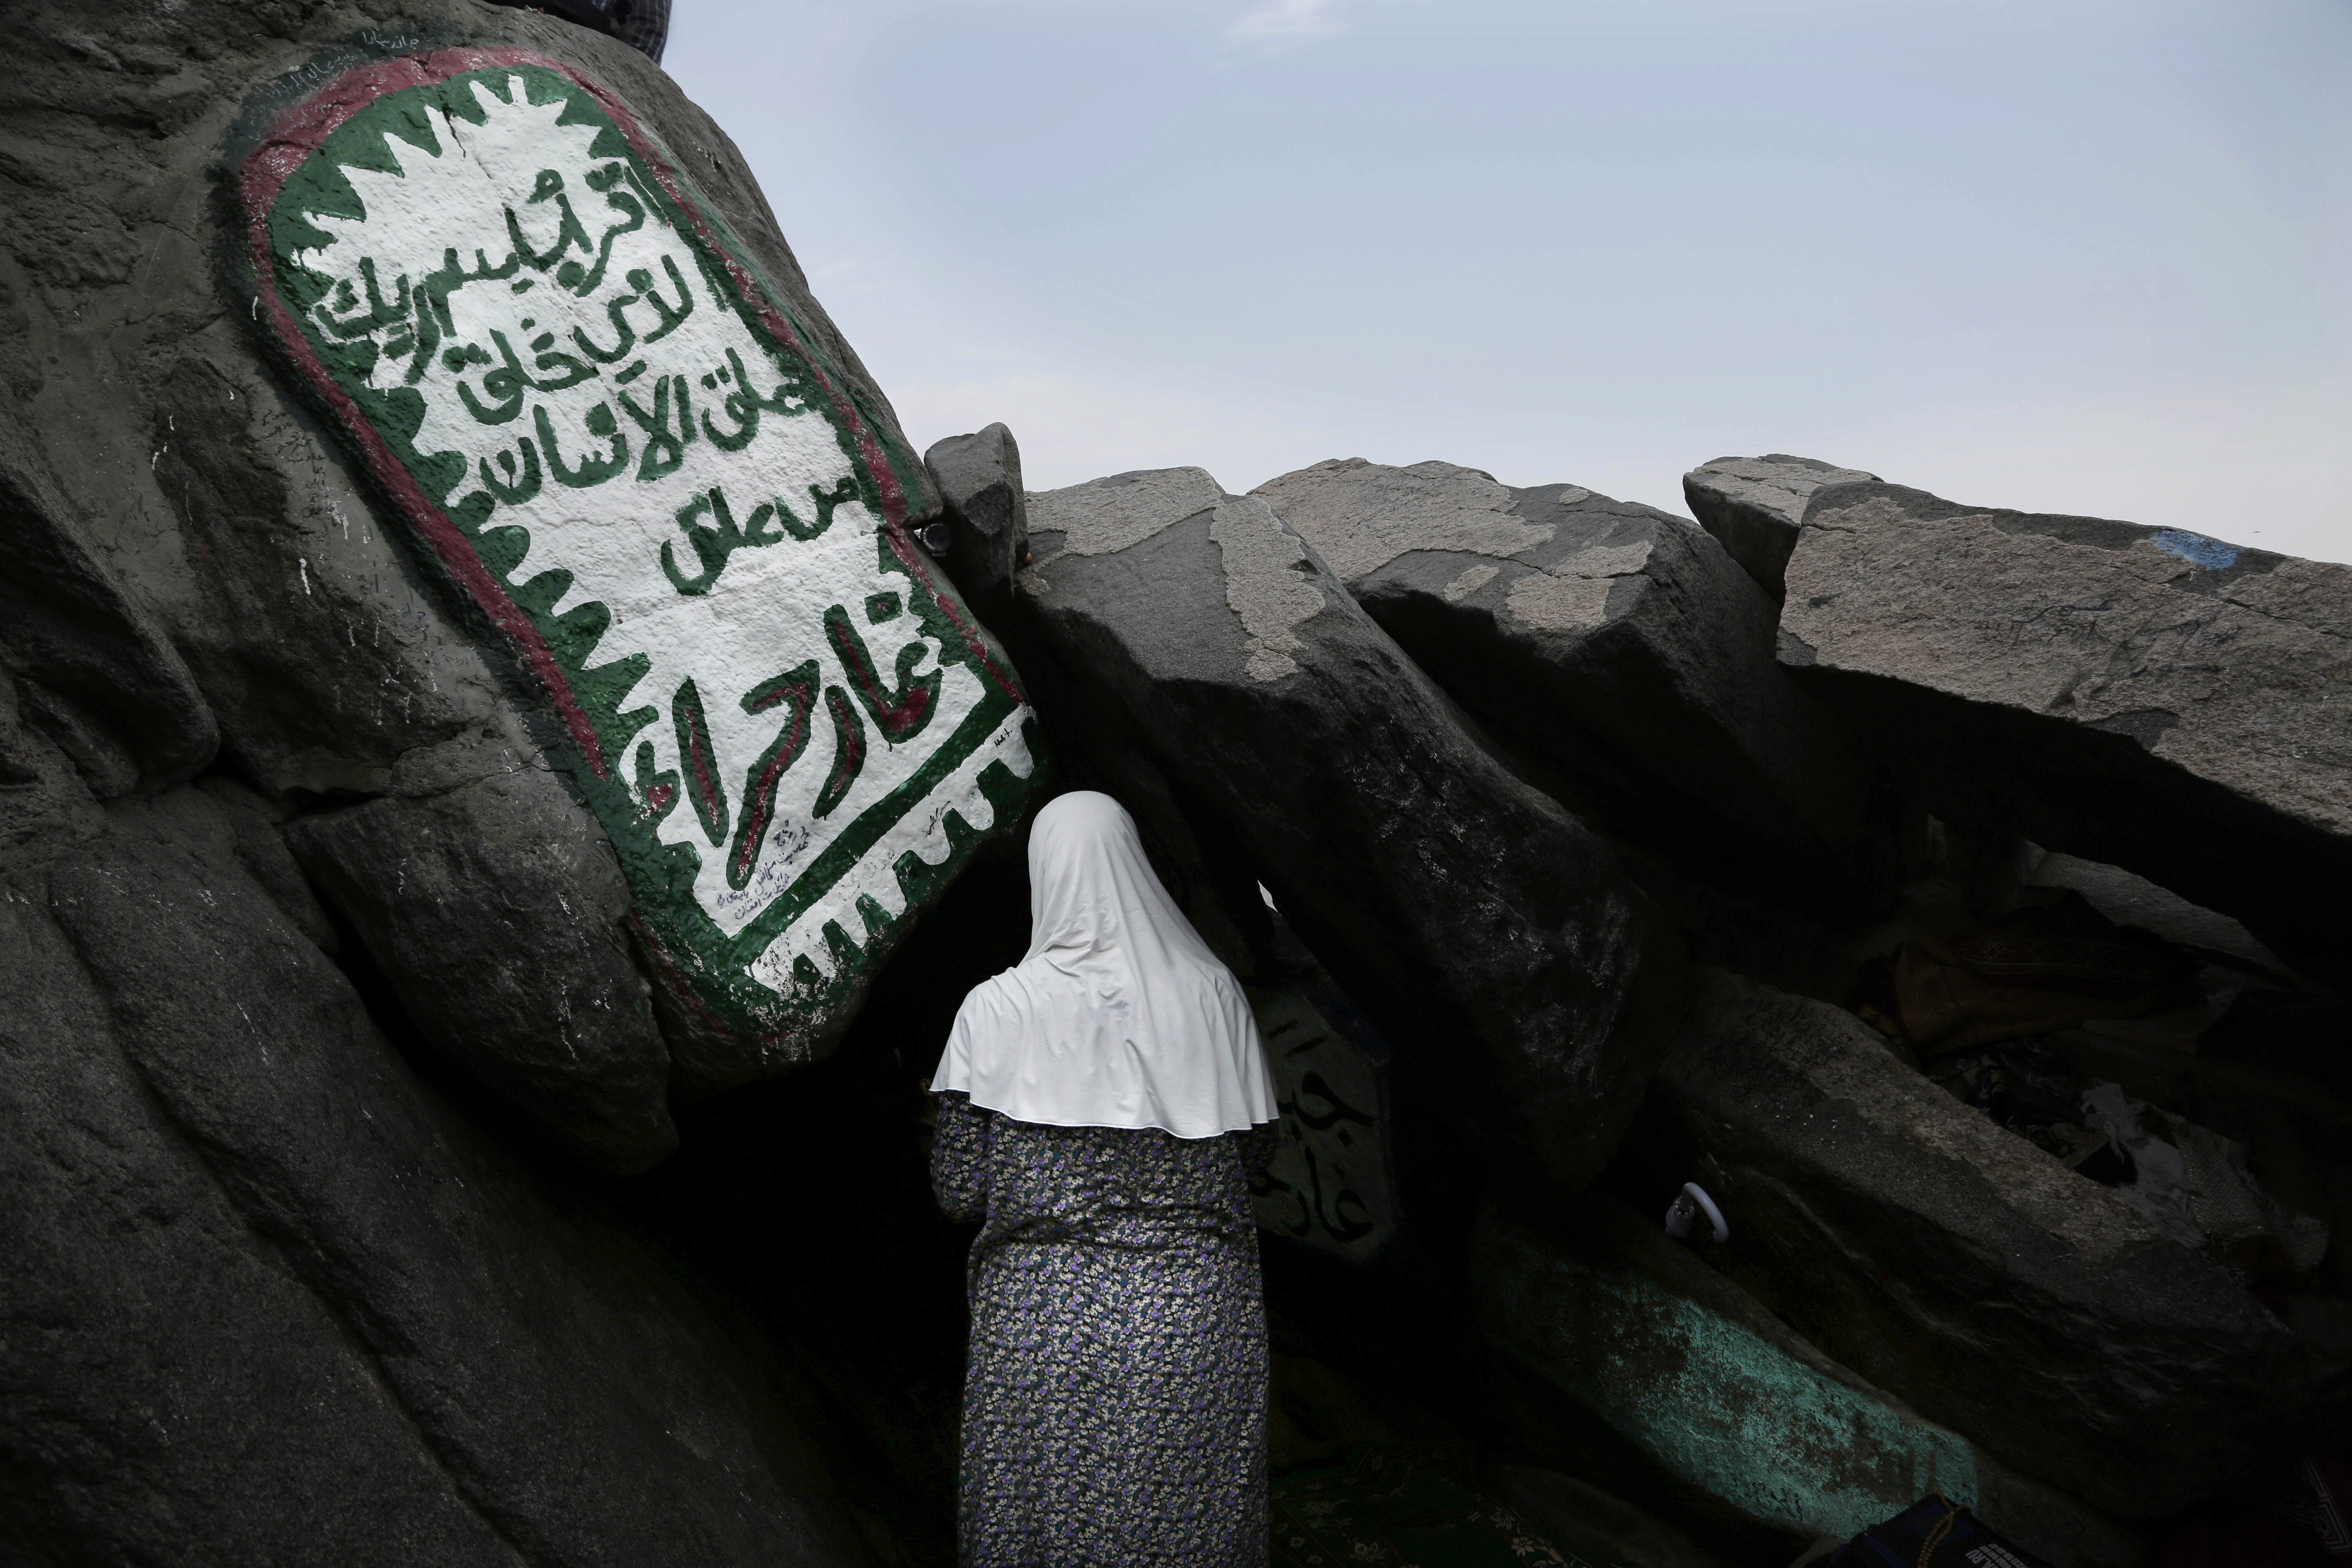 A Turkish Muslim woman prays inside Hiraa cave, where the Prophet Muhammad received his first revelation from God to preach Islam, on Noor Mountain, on the outskirts of Mecca, Saudi Arabia, Sept. 9, 2016.